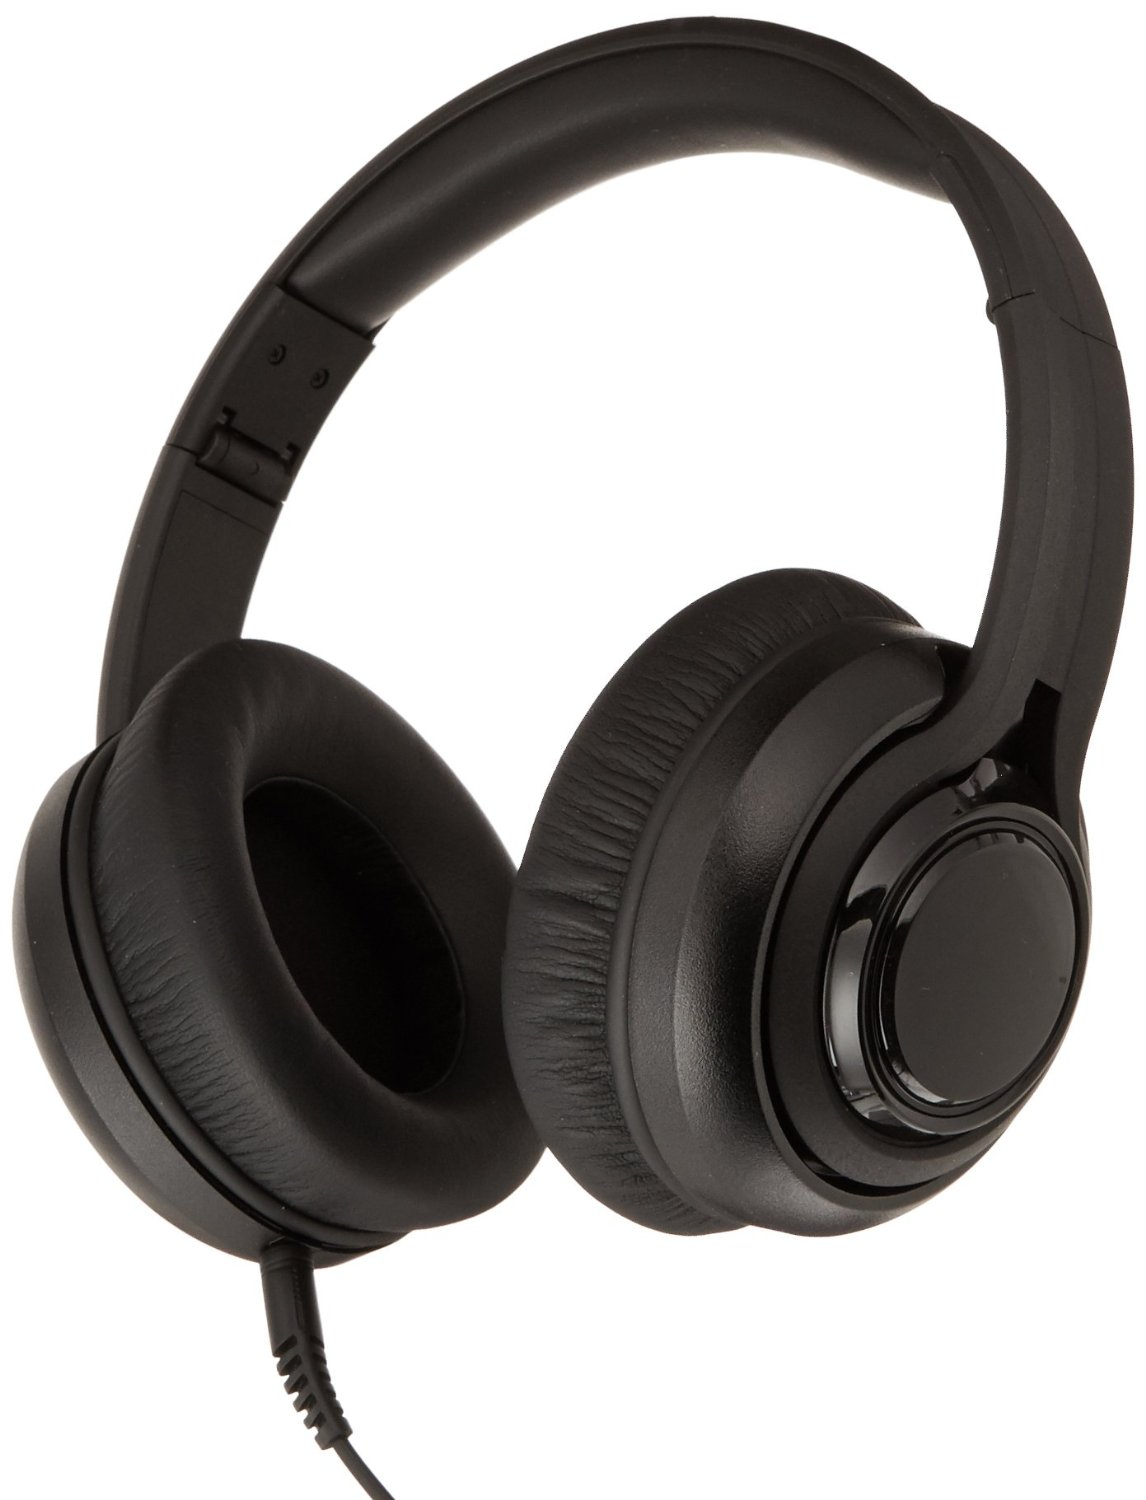 amazonbasics premium over ear headphone kopfh rer test und. Black Bedroom Furniture Sets. Home Design Ideas